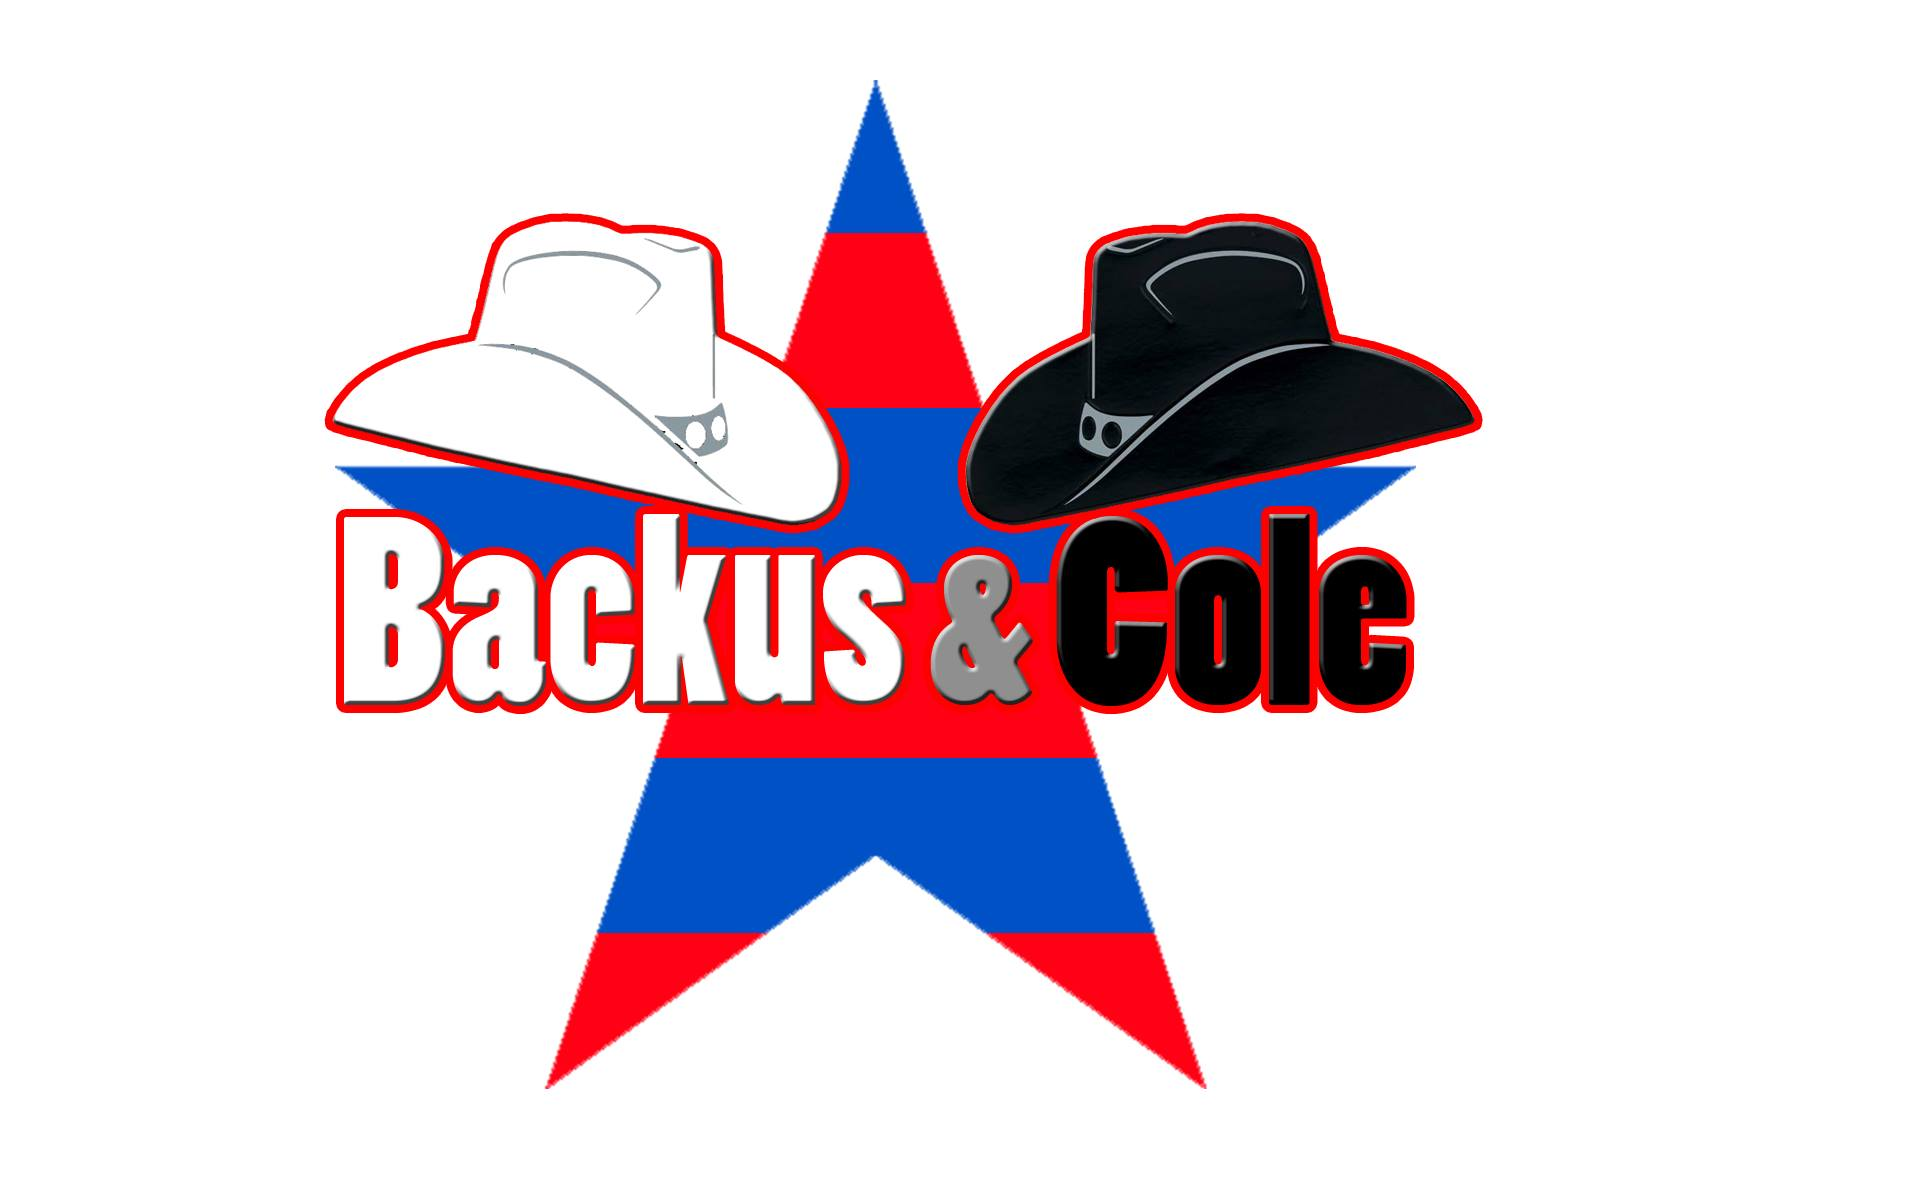 Backus & Cole Hats